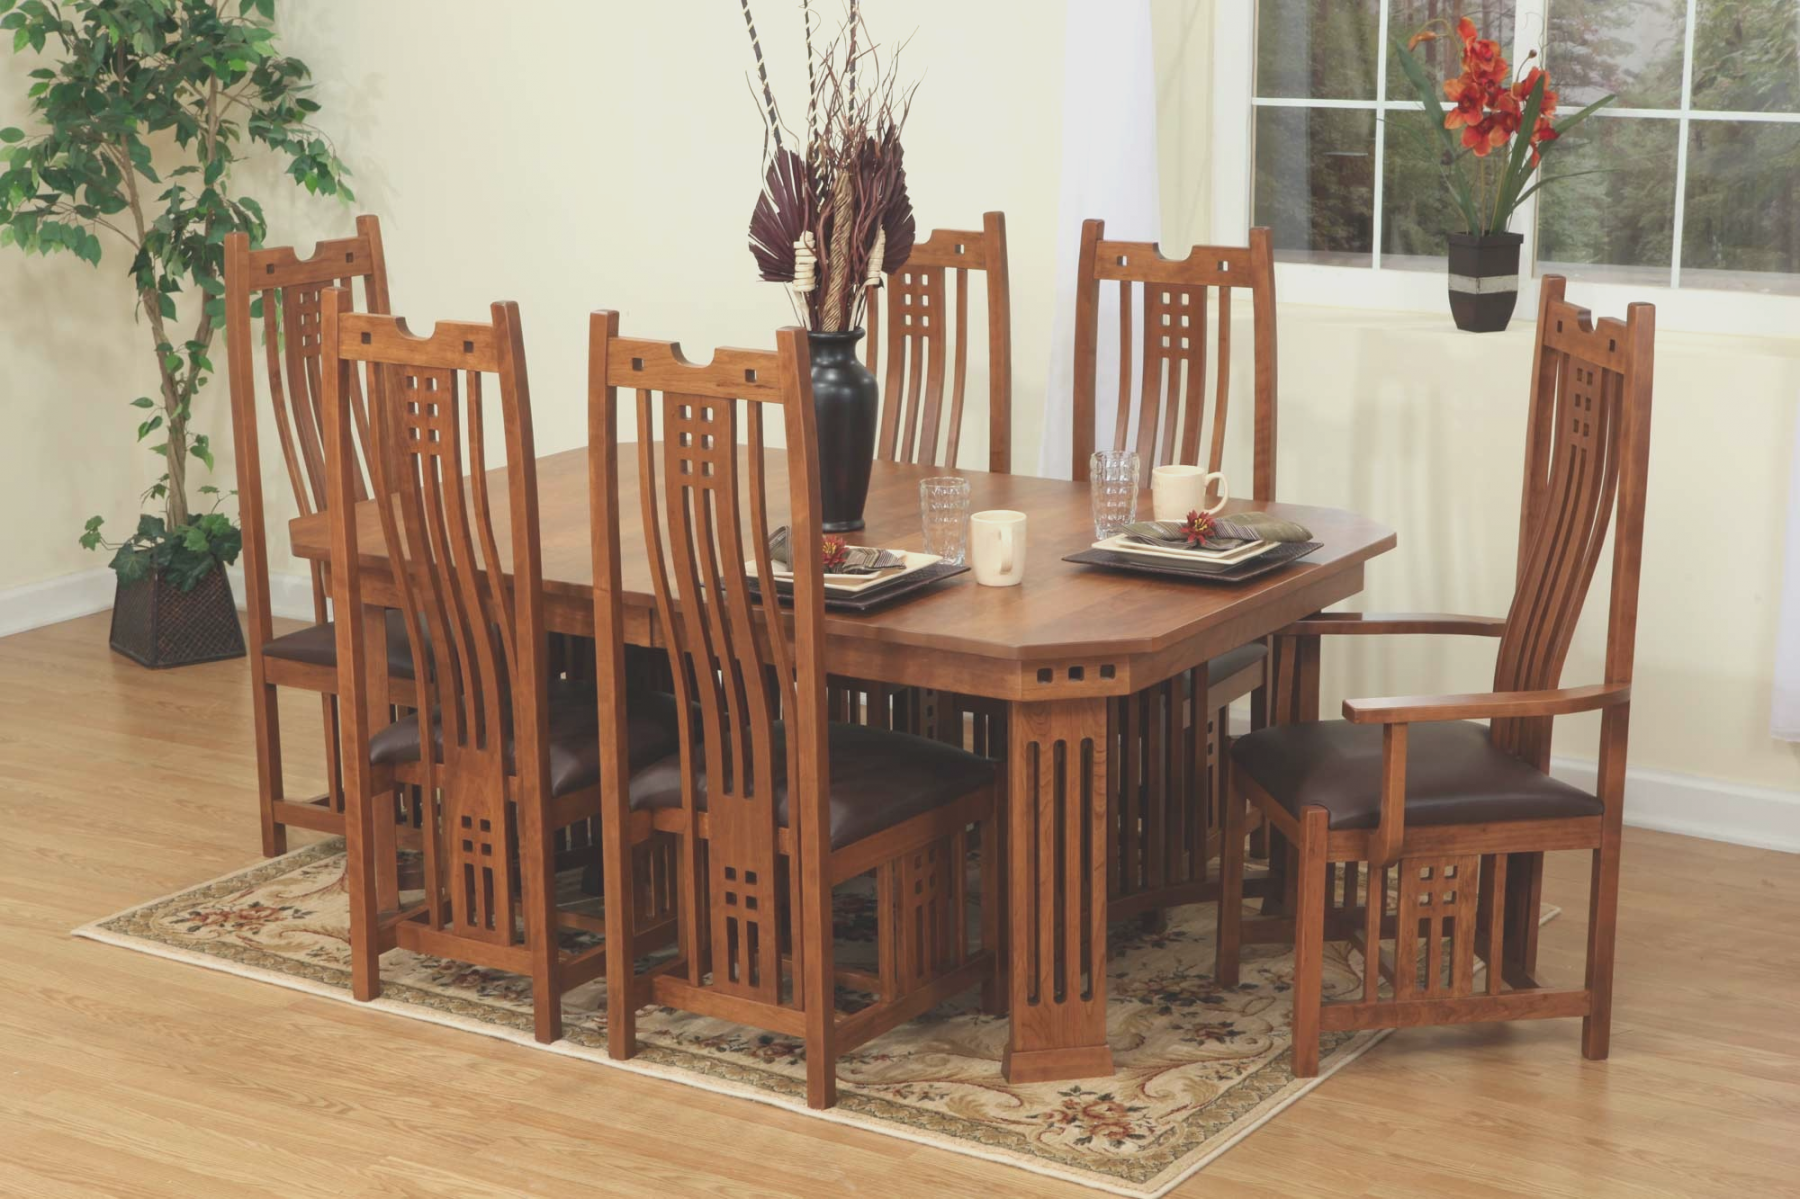 Beautiful Oak Dining Room Table And Chairs Oak Dining Room Table Craftsman Dining Tables Modern Dining Room